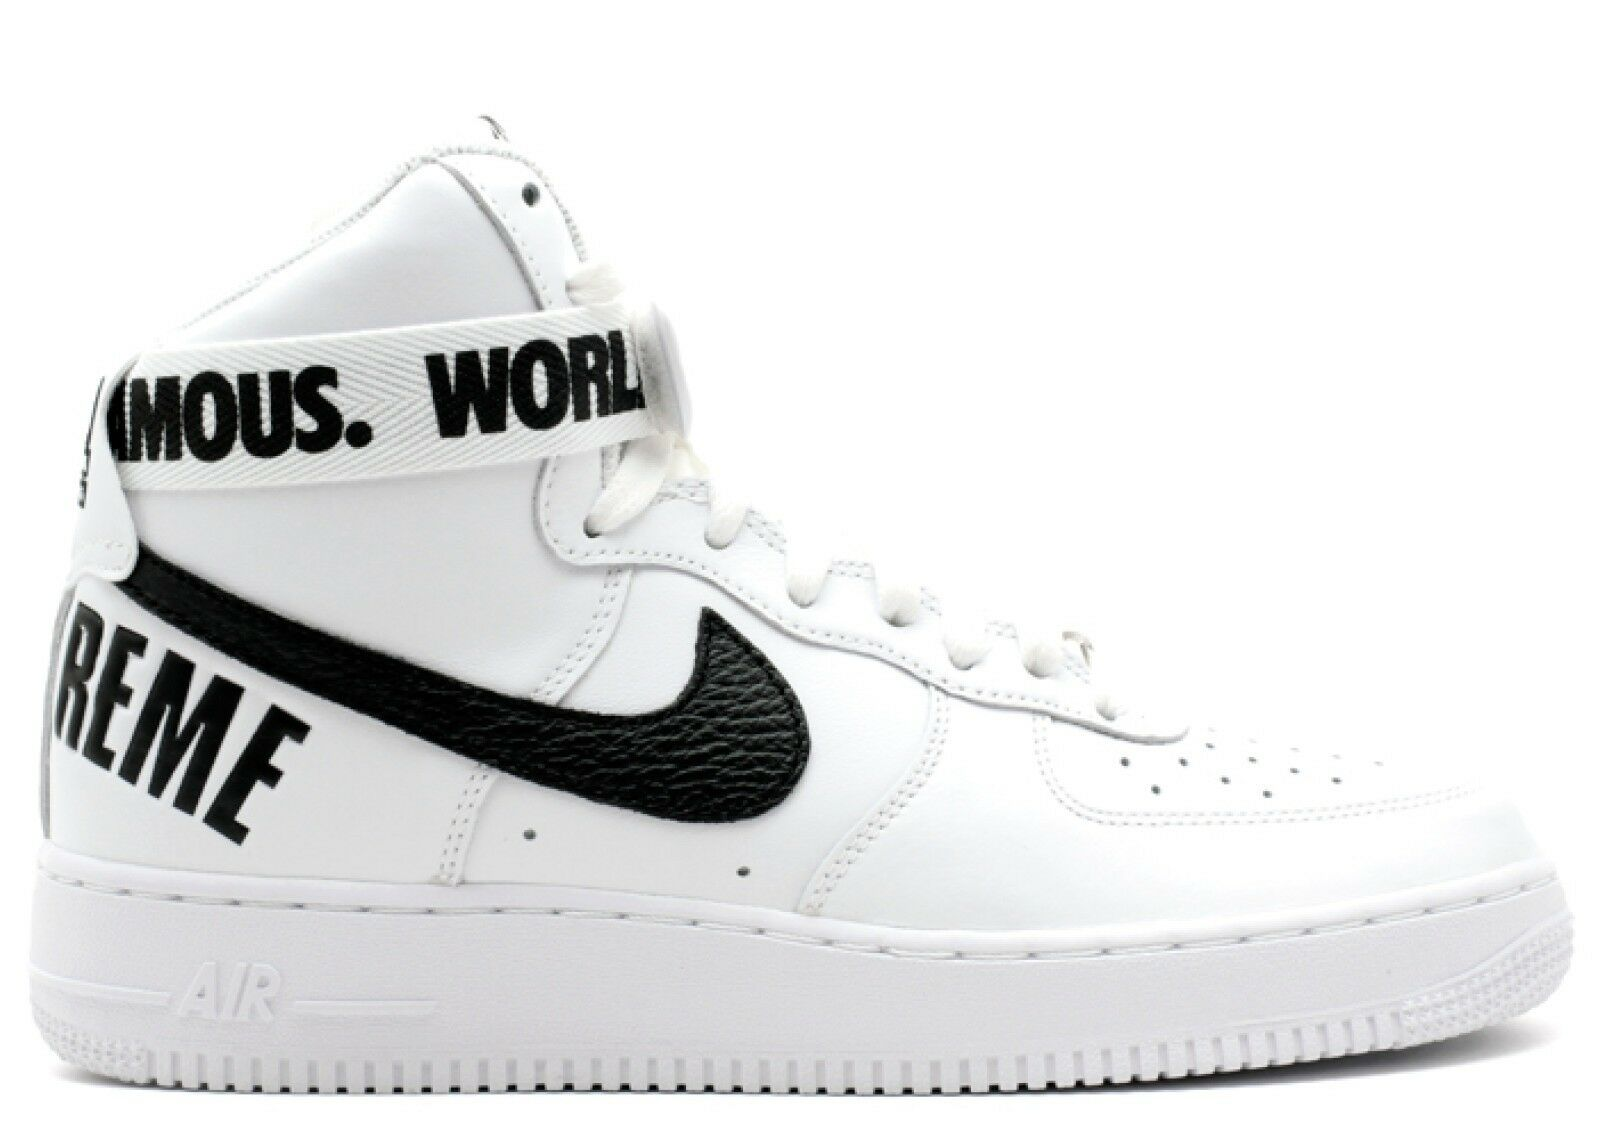 Supreme x Nike Air Force one 1 High Blanc Taille 10.5 US 11.5